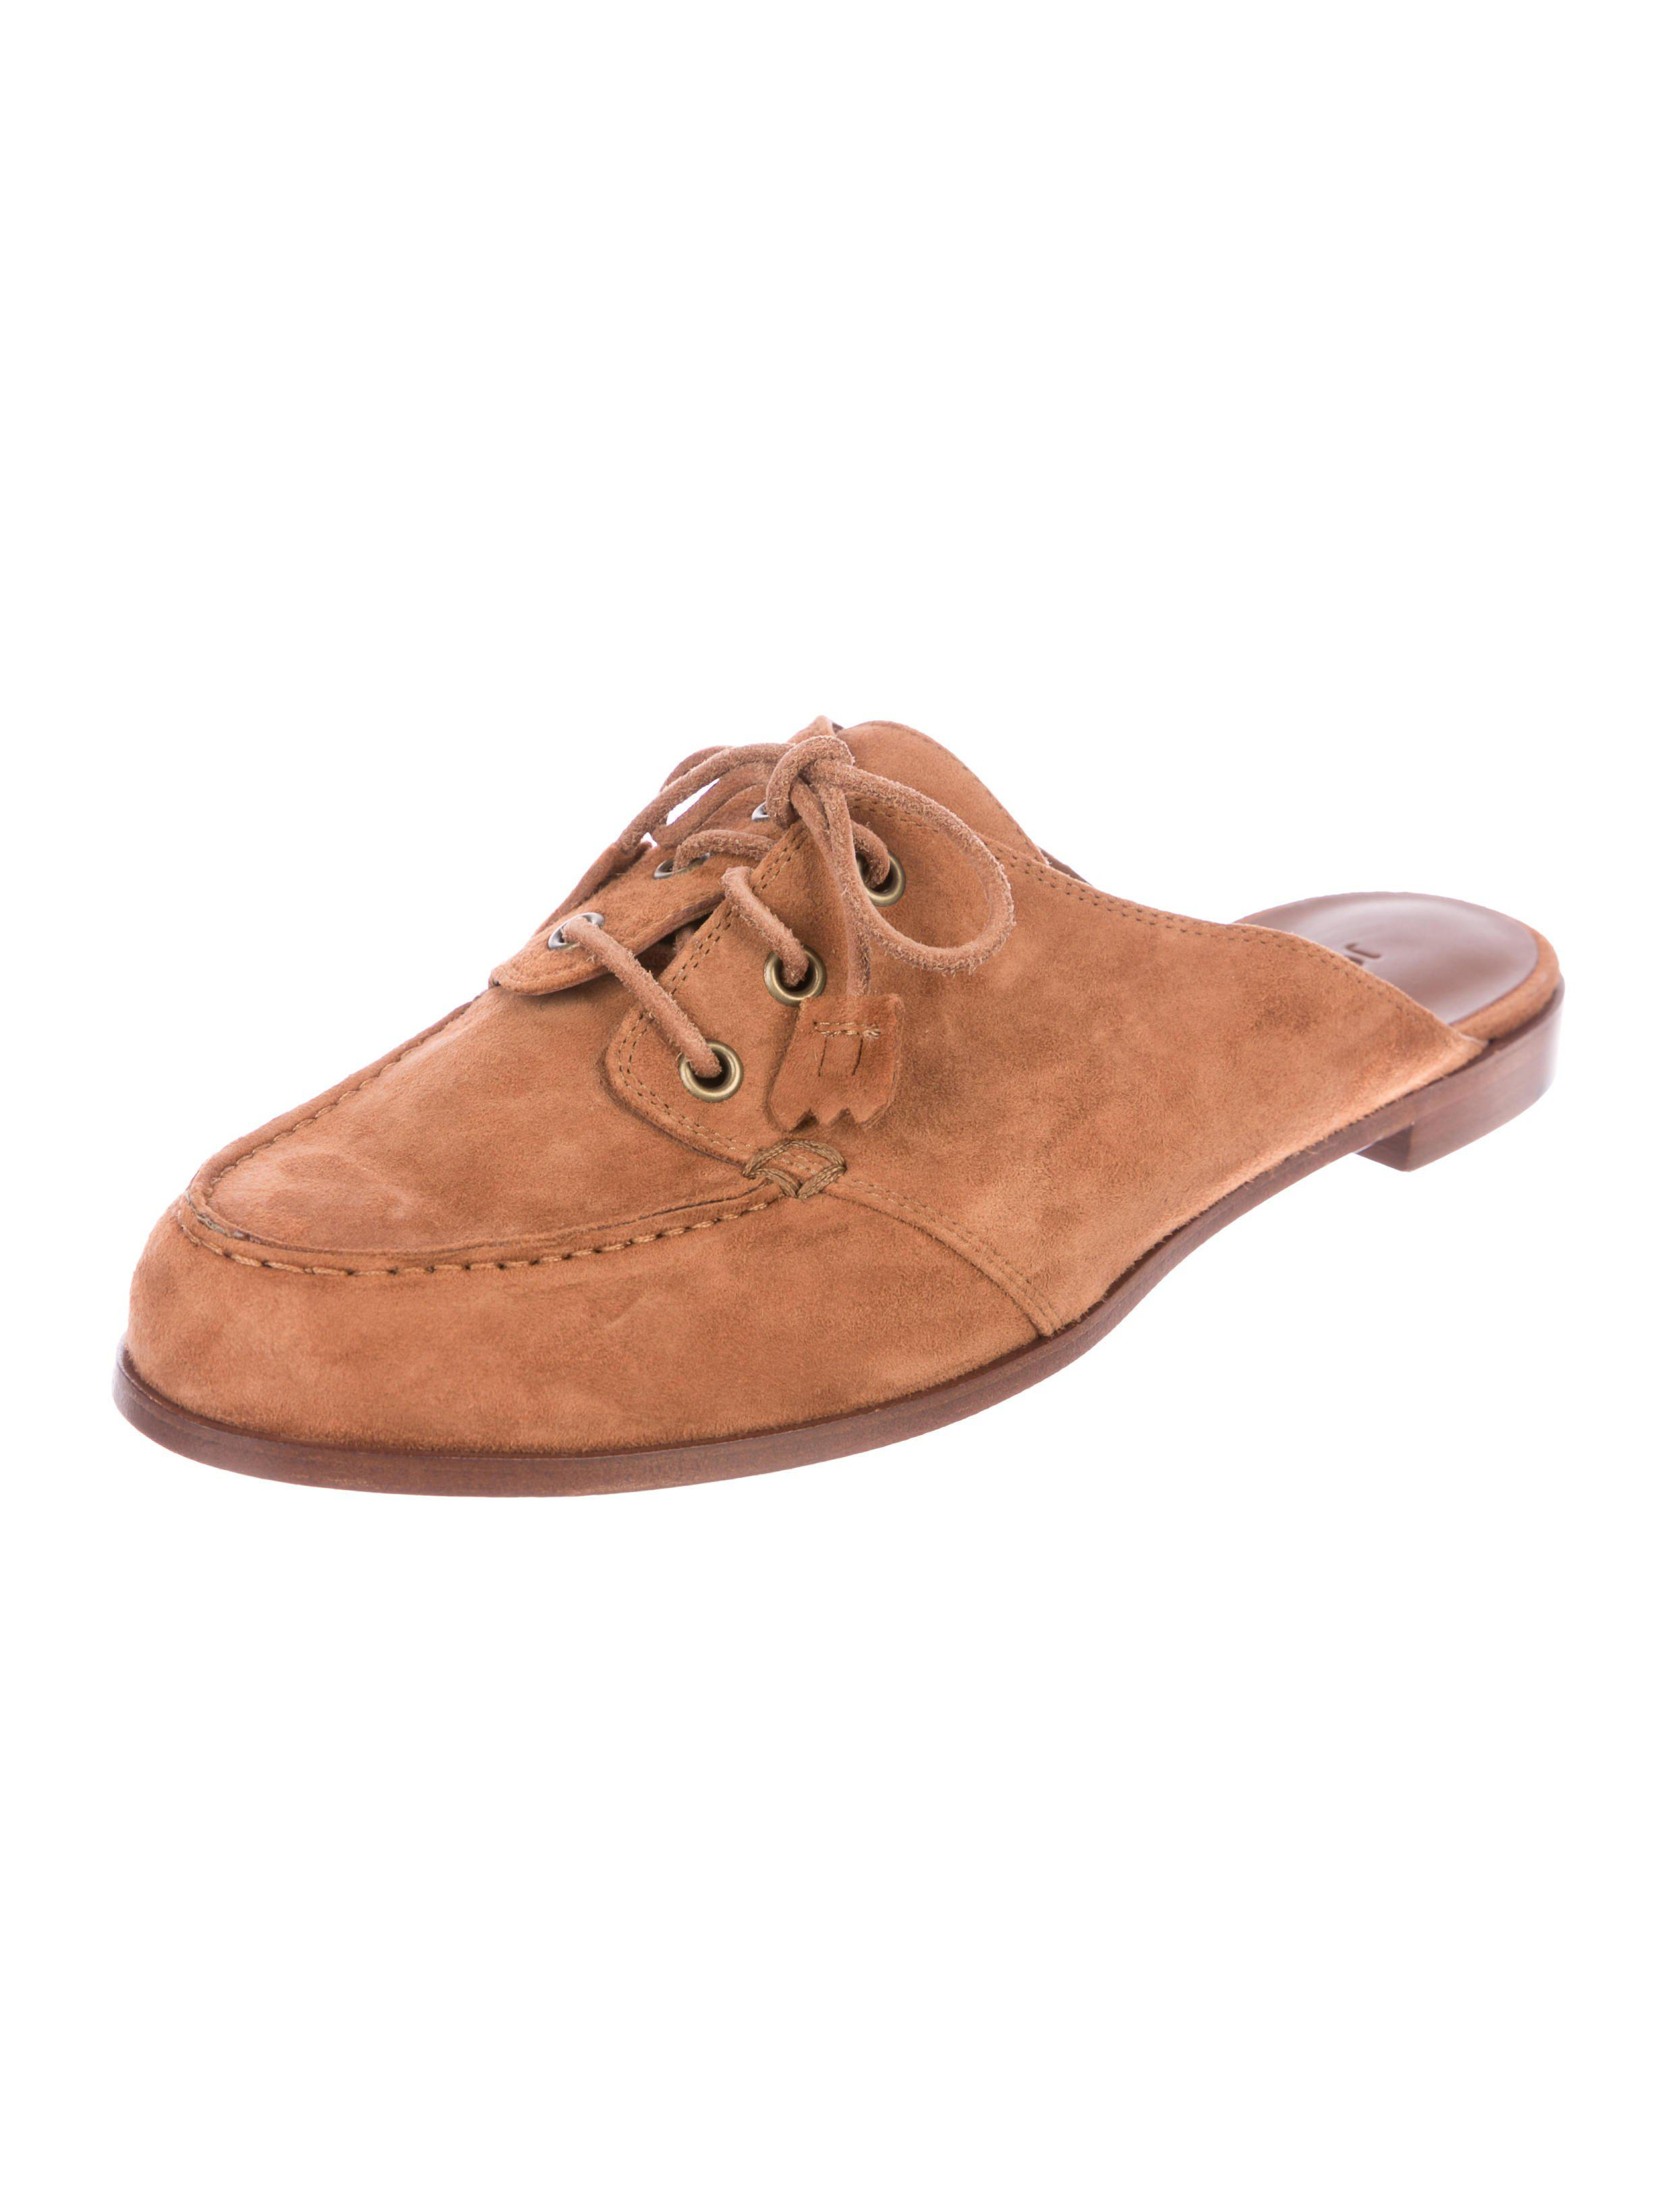 Jenni Kayne Suede Lace-Up Mules buy cheap nicekicks discount sast clearance classic 5Od0ftWl64